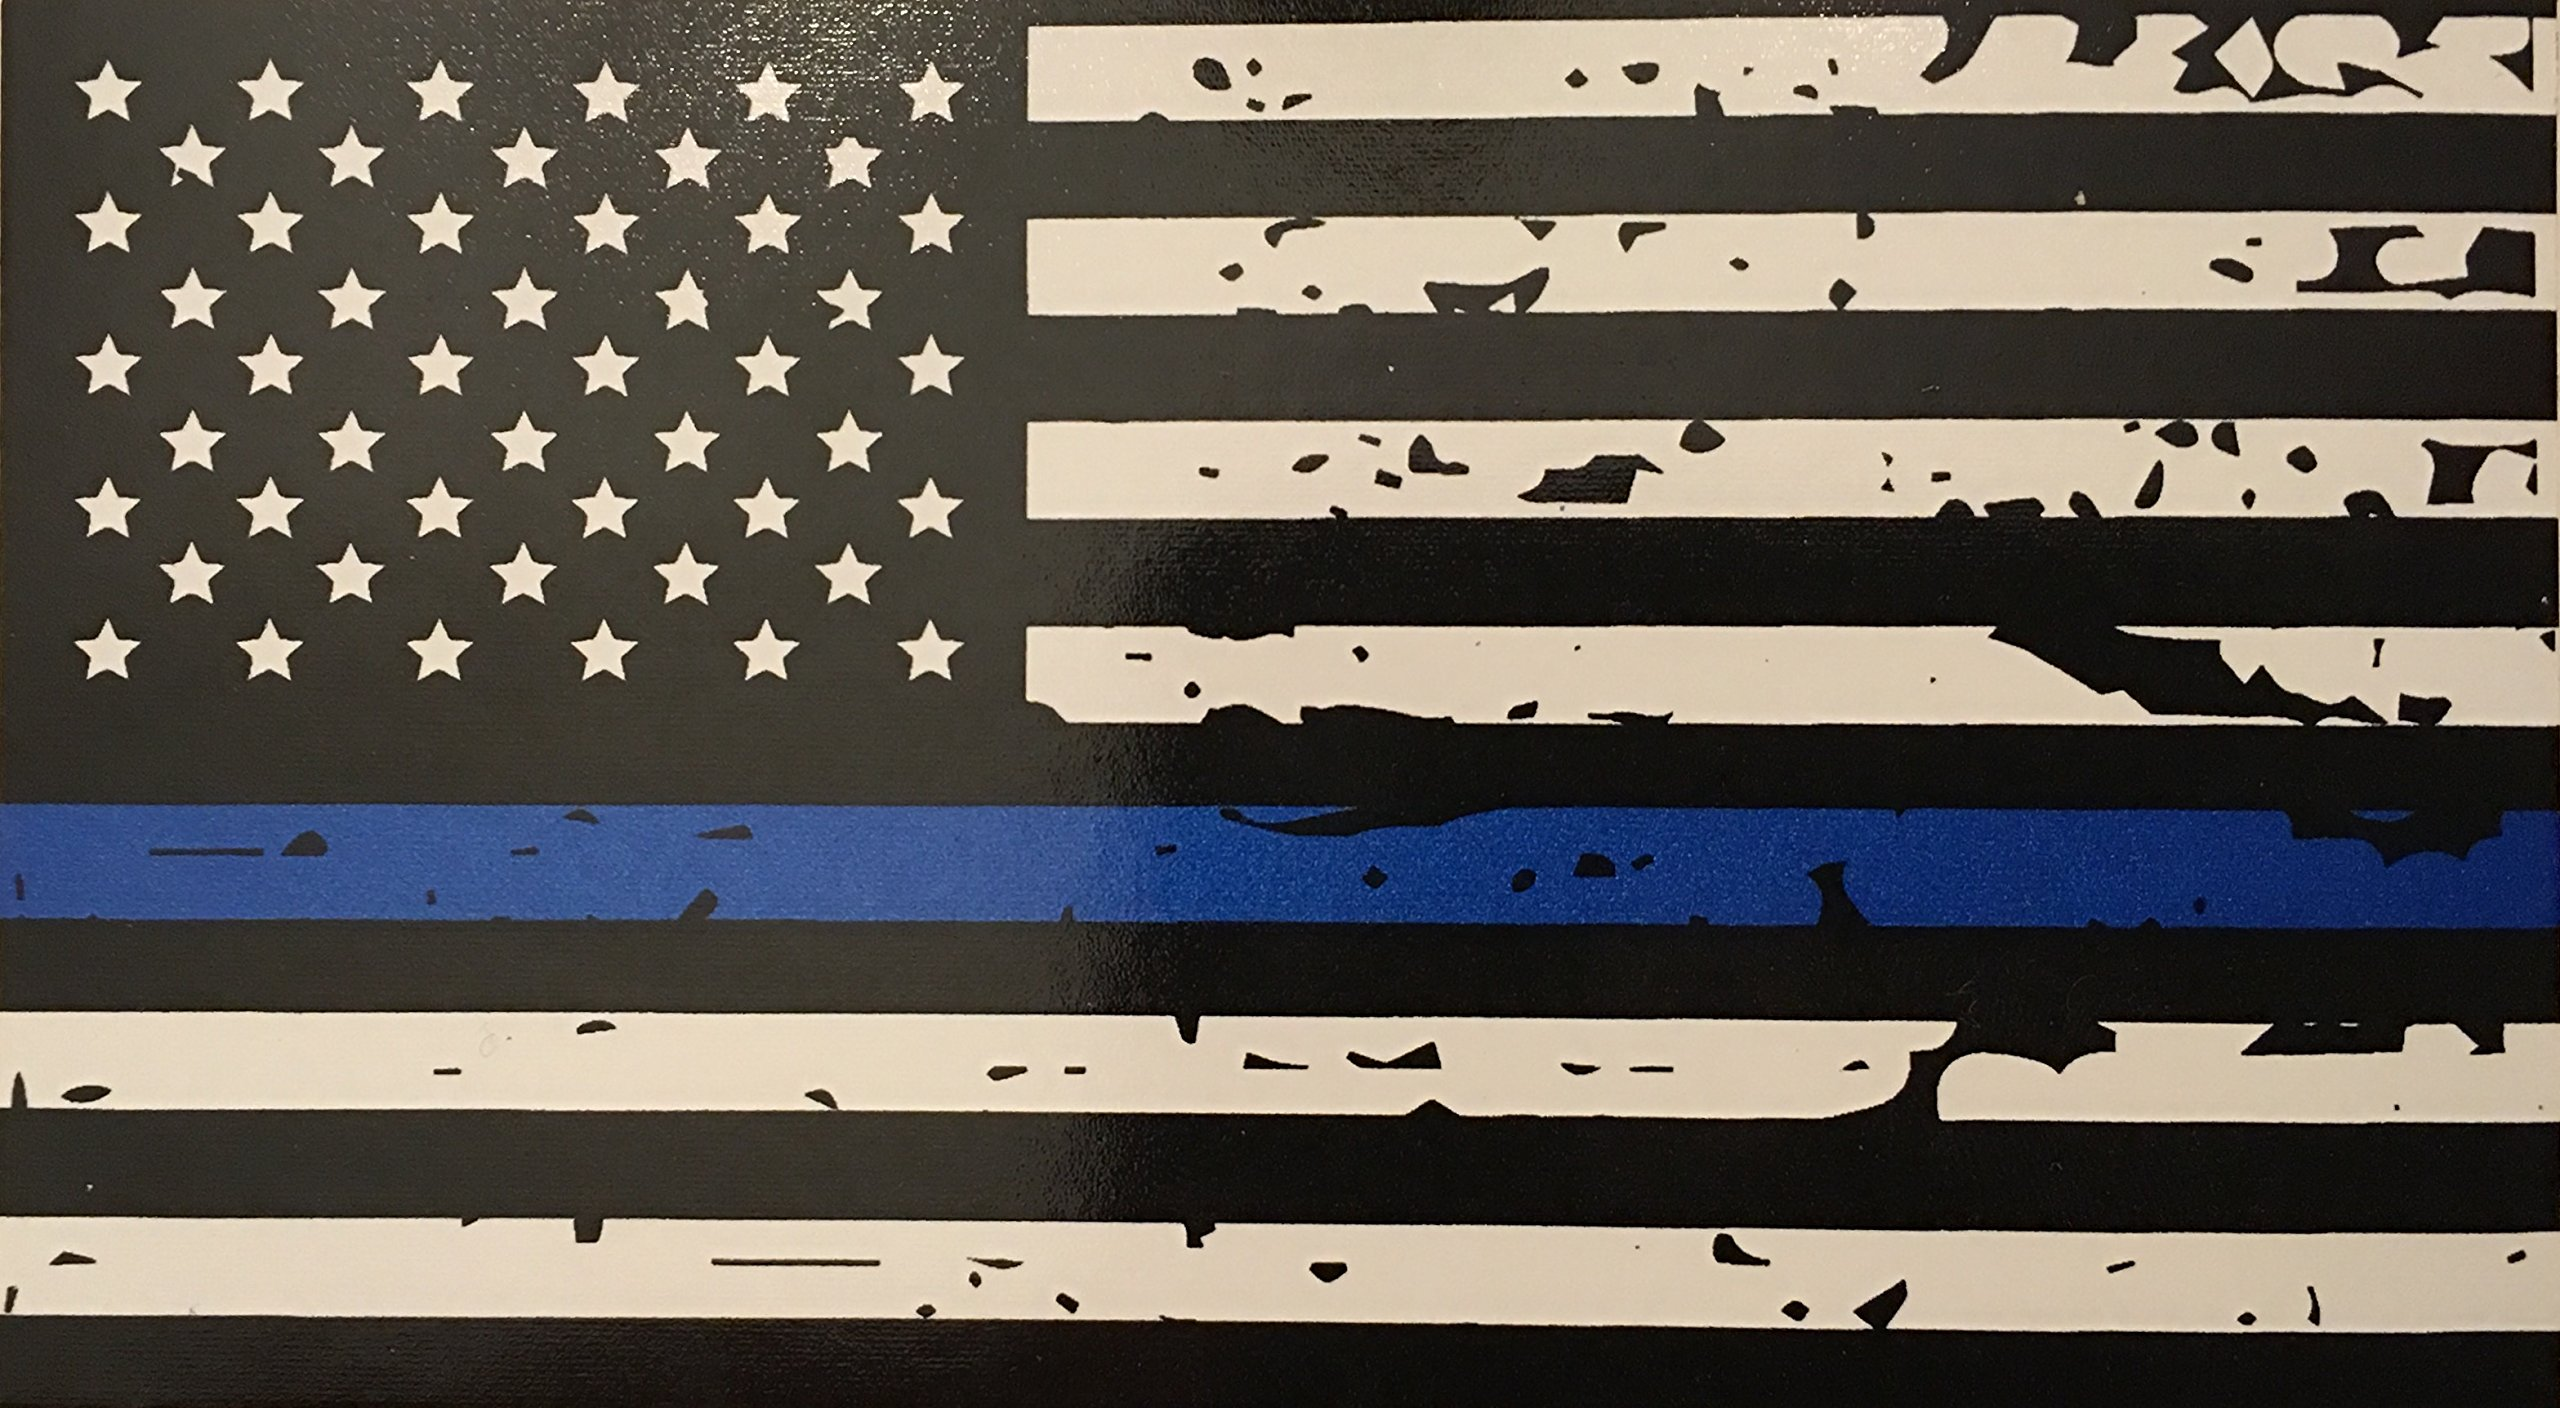 Blueline flags tattered thin blue line vinyl reflective decal black white blue american